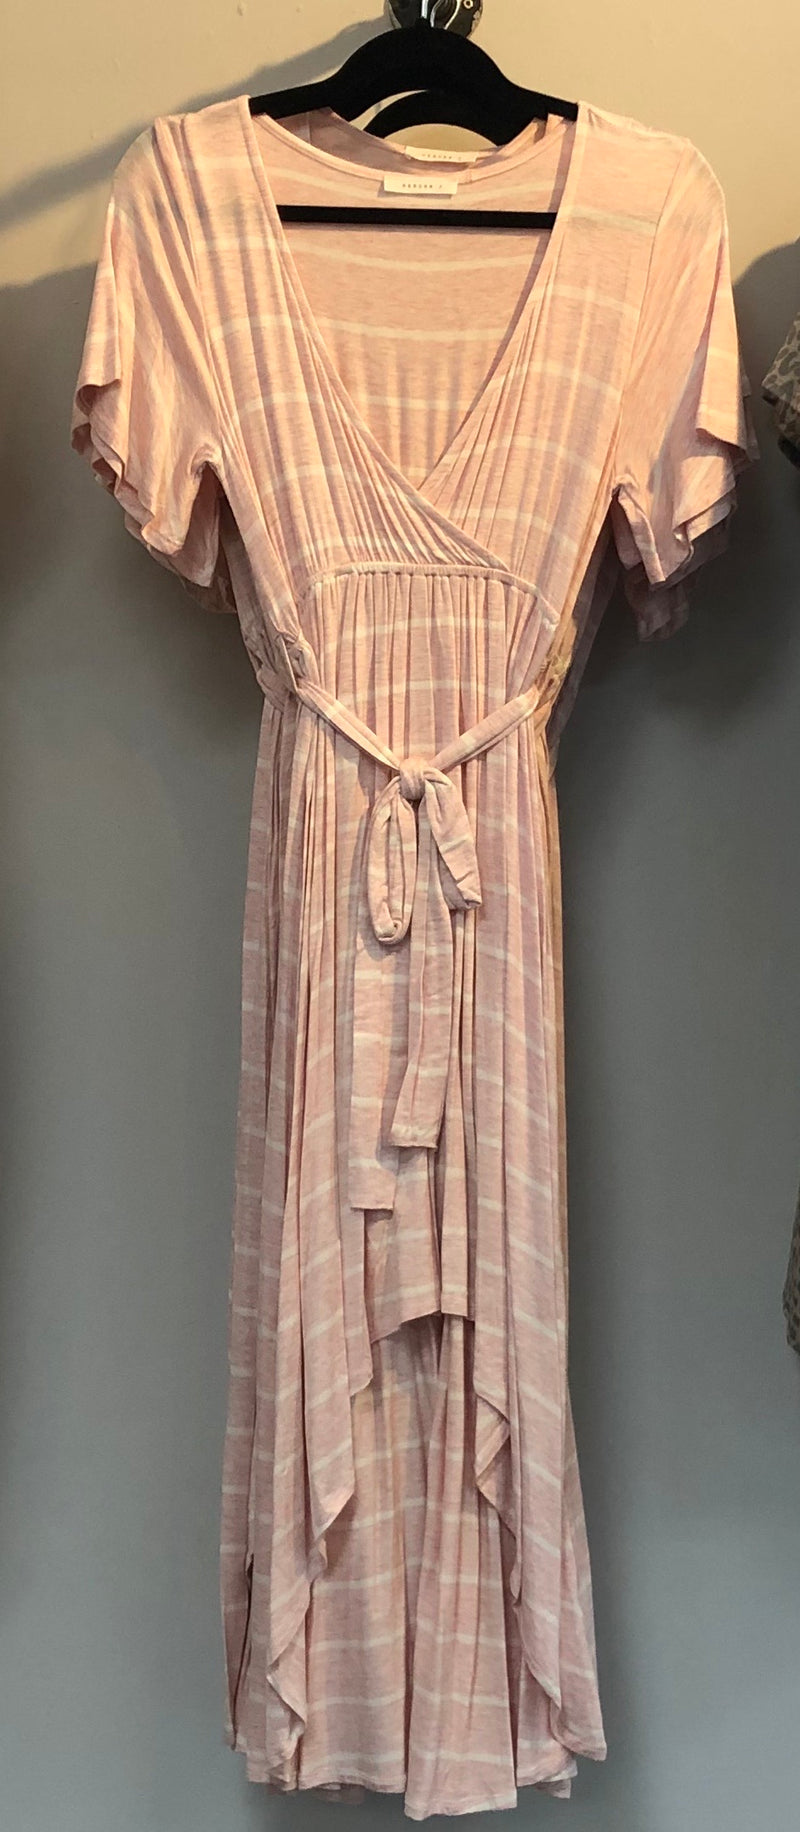 Gabriella Pink Striped Dress